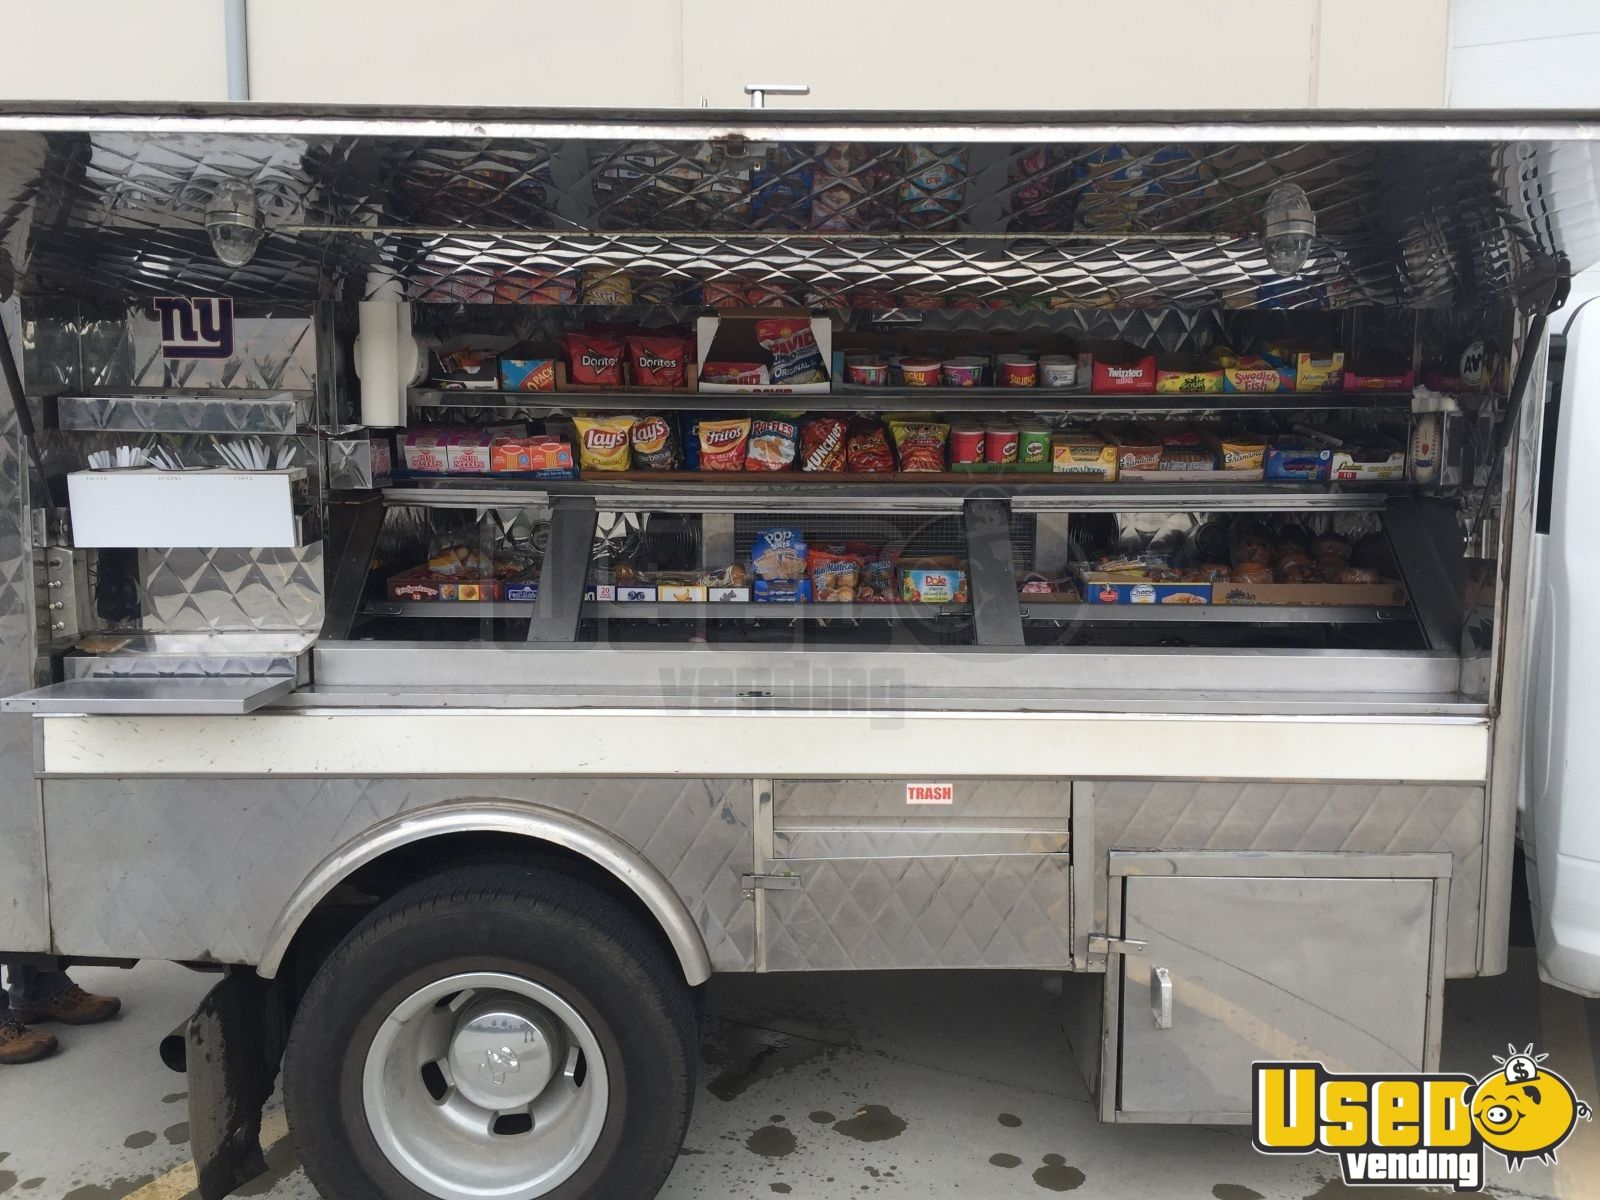 2017 Dodge Lunch / Canteen Truck Turnkey Business for Sale in New Jersey - 2